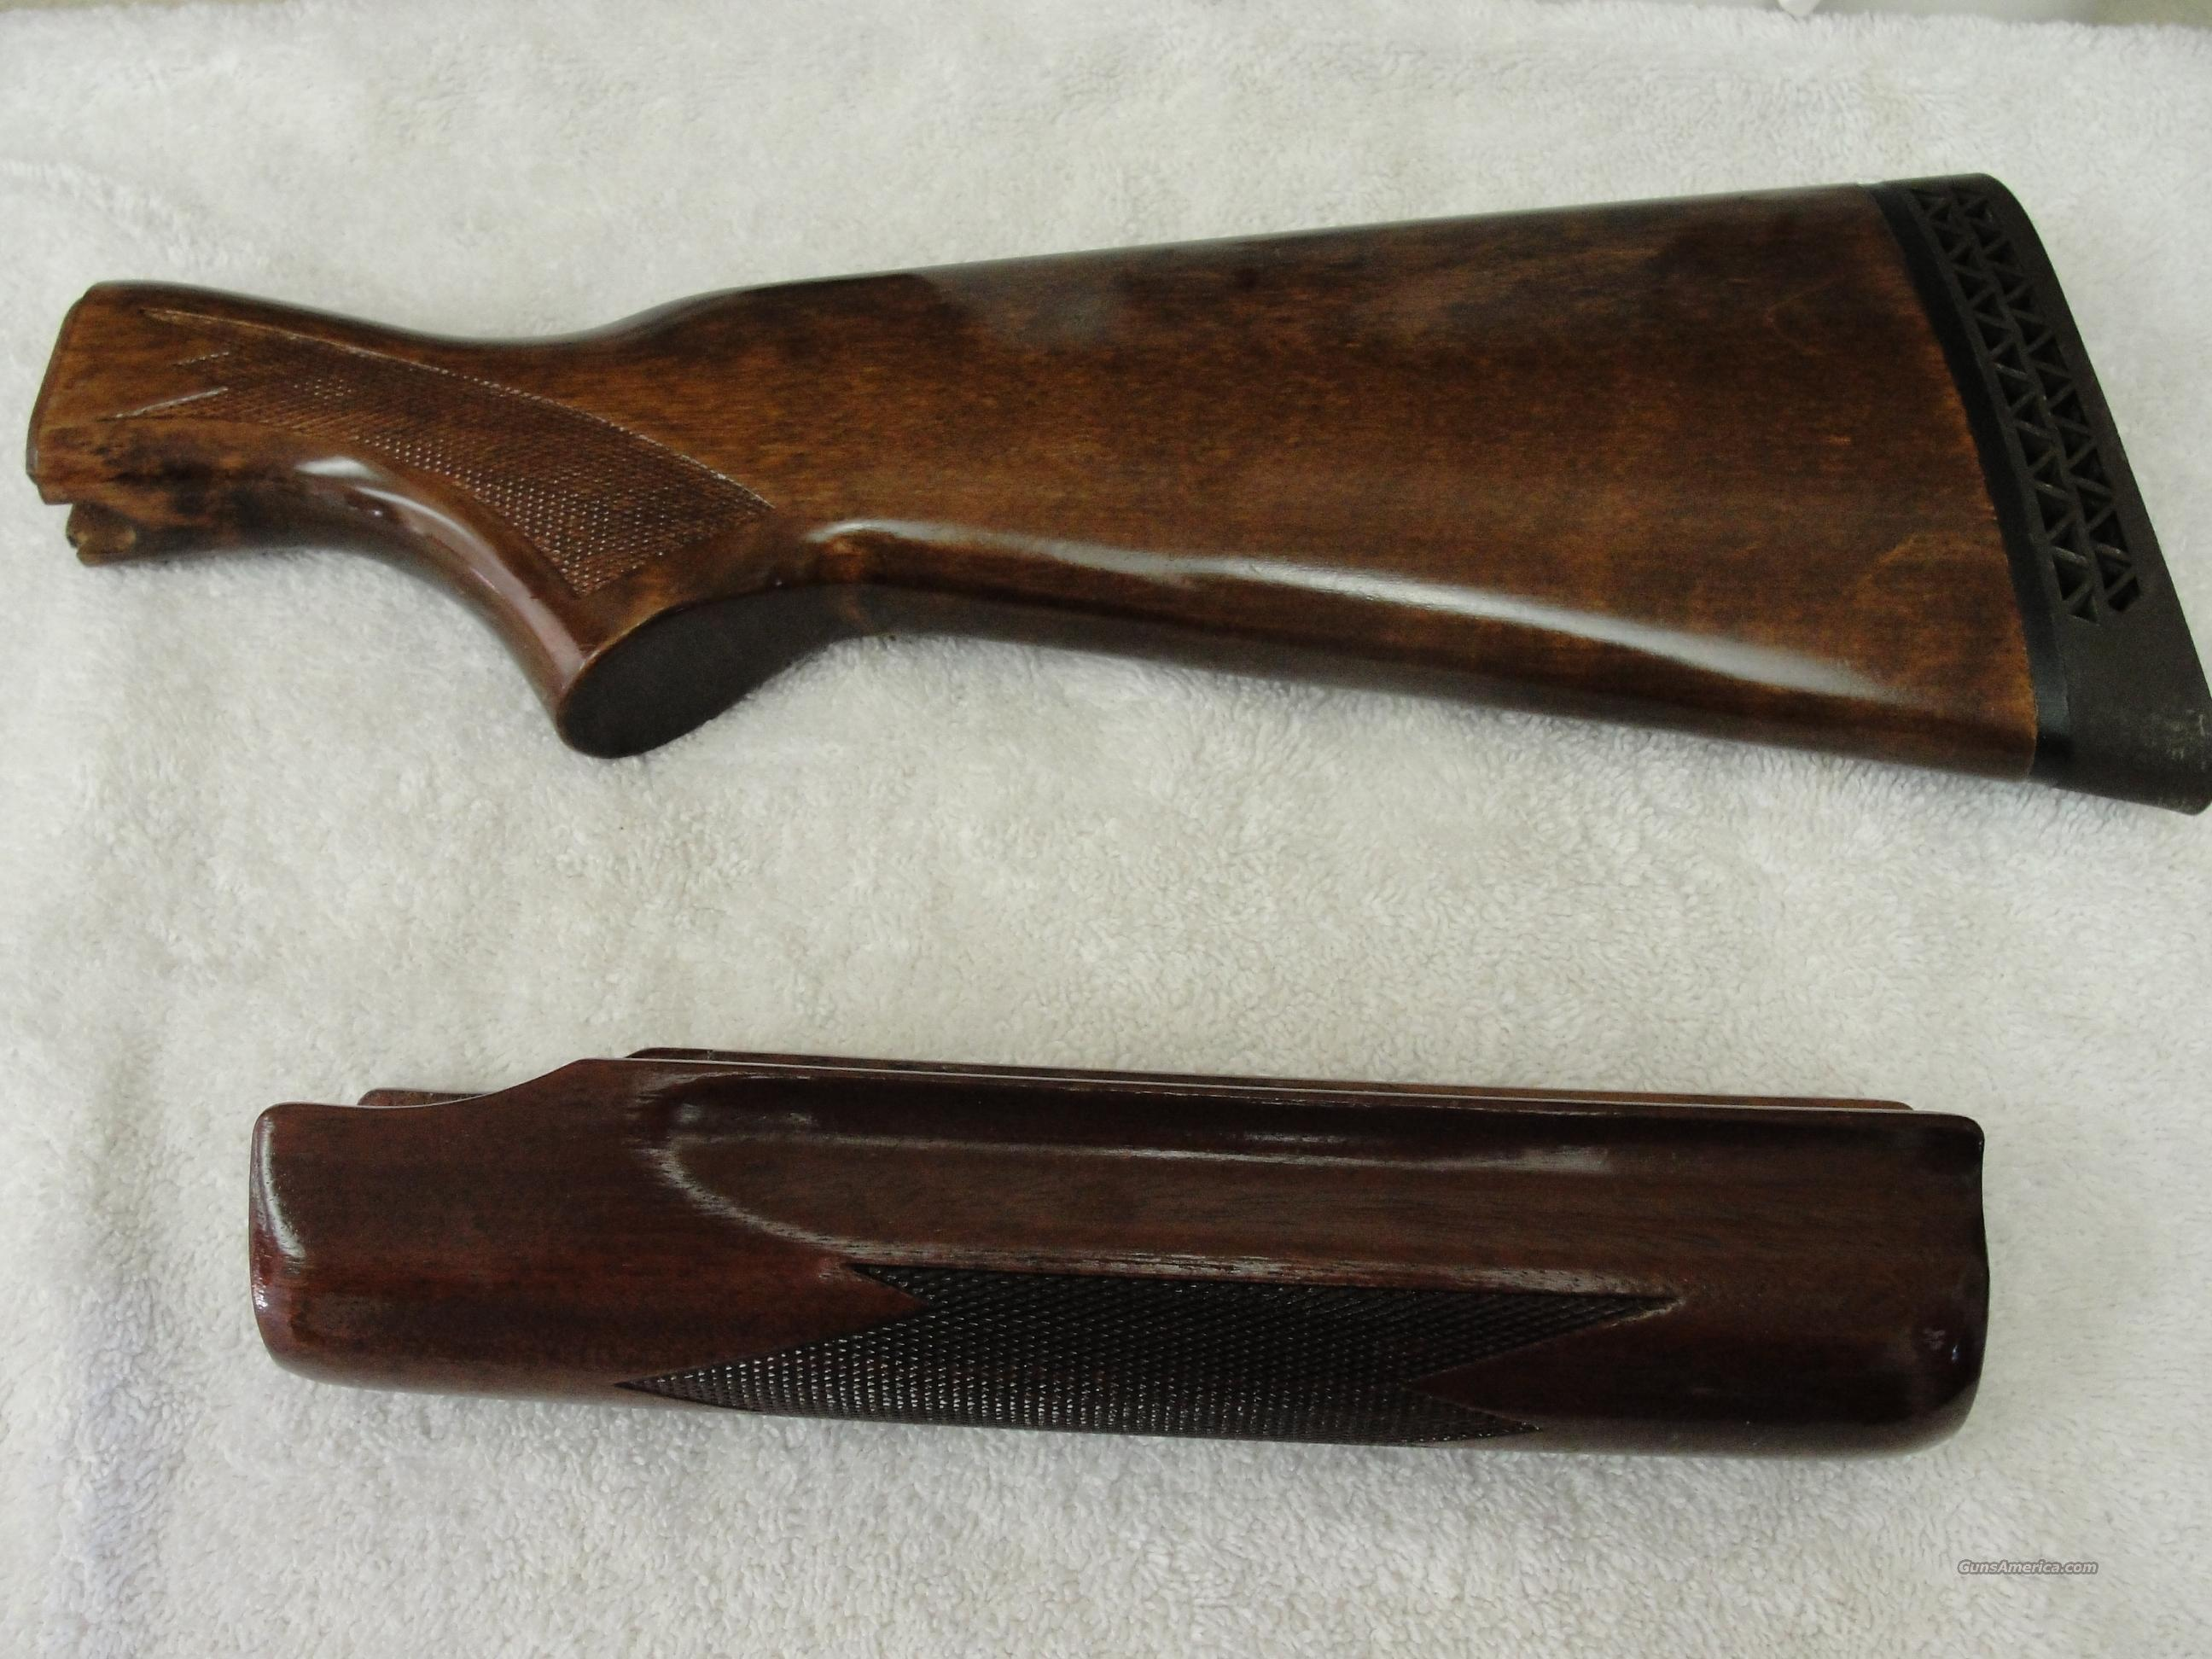 Remington 870 Wingmaster stock and forend